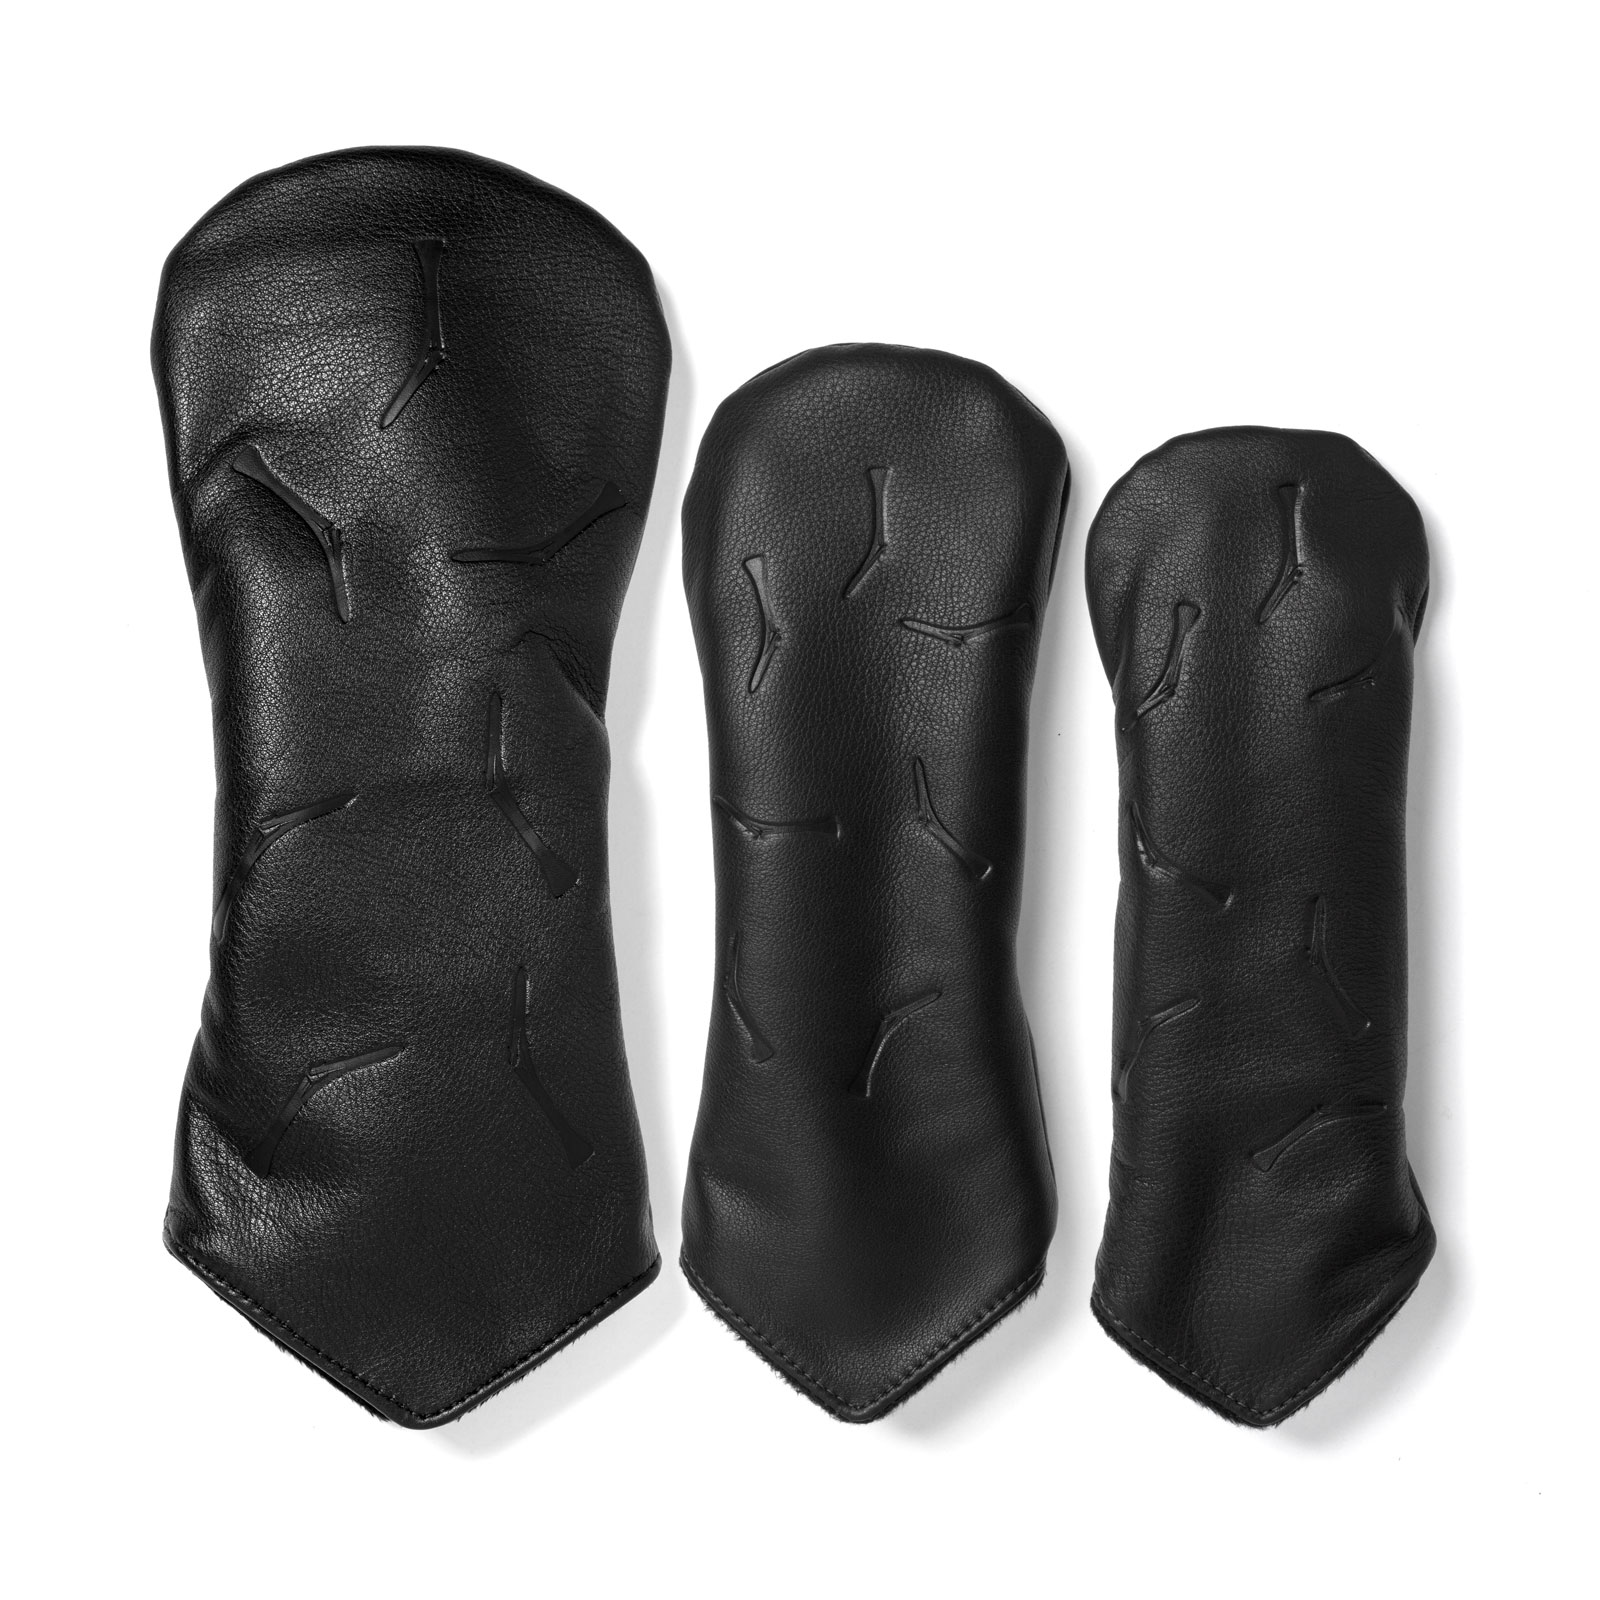 TGJ x Links & Kings Broken Tee Leather Headcovers - Black